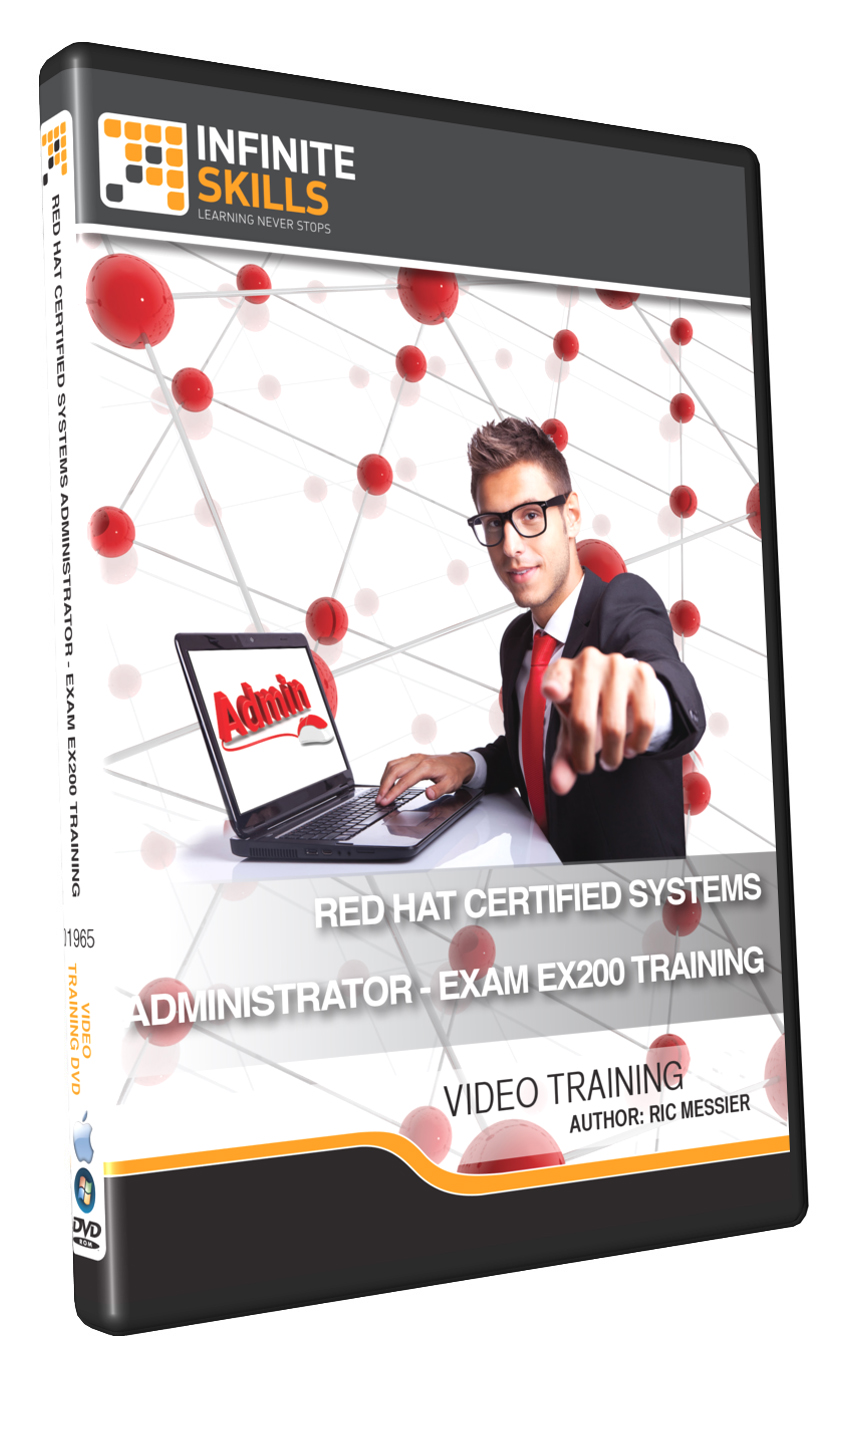 Red Hat Certified System Administrator - Exam EX200 Training